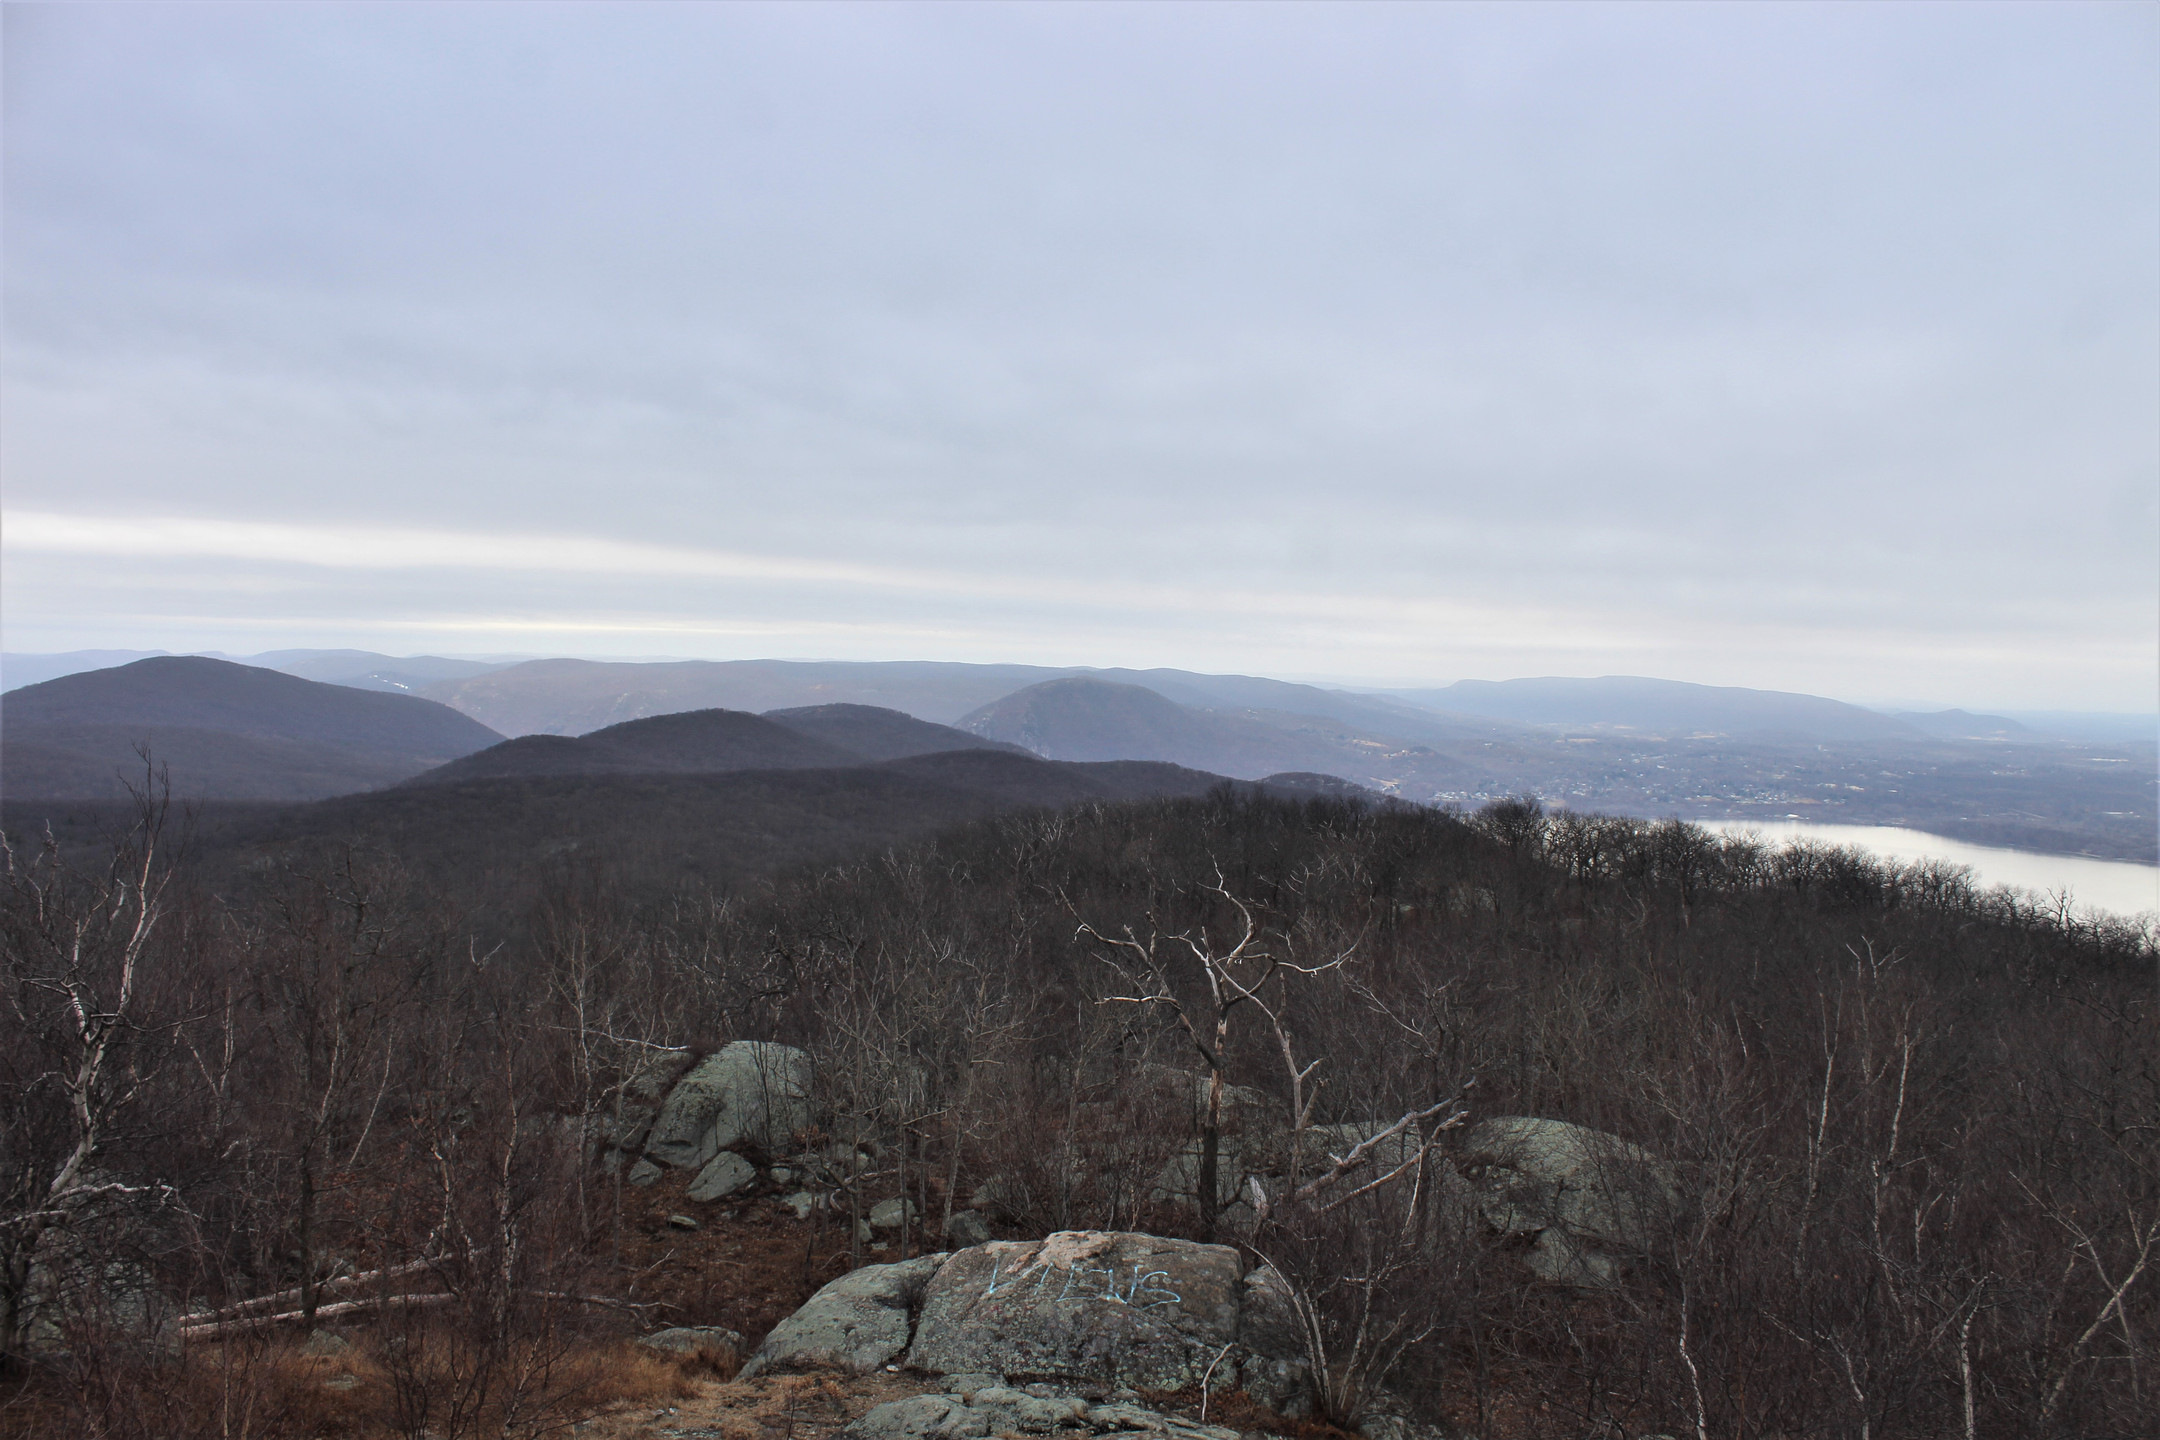 Southwest View from Fire Tower